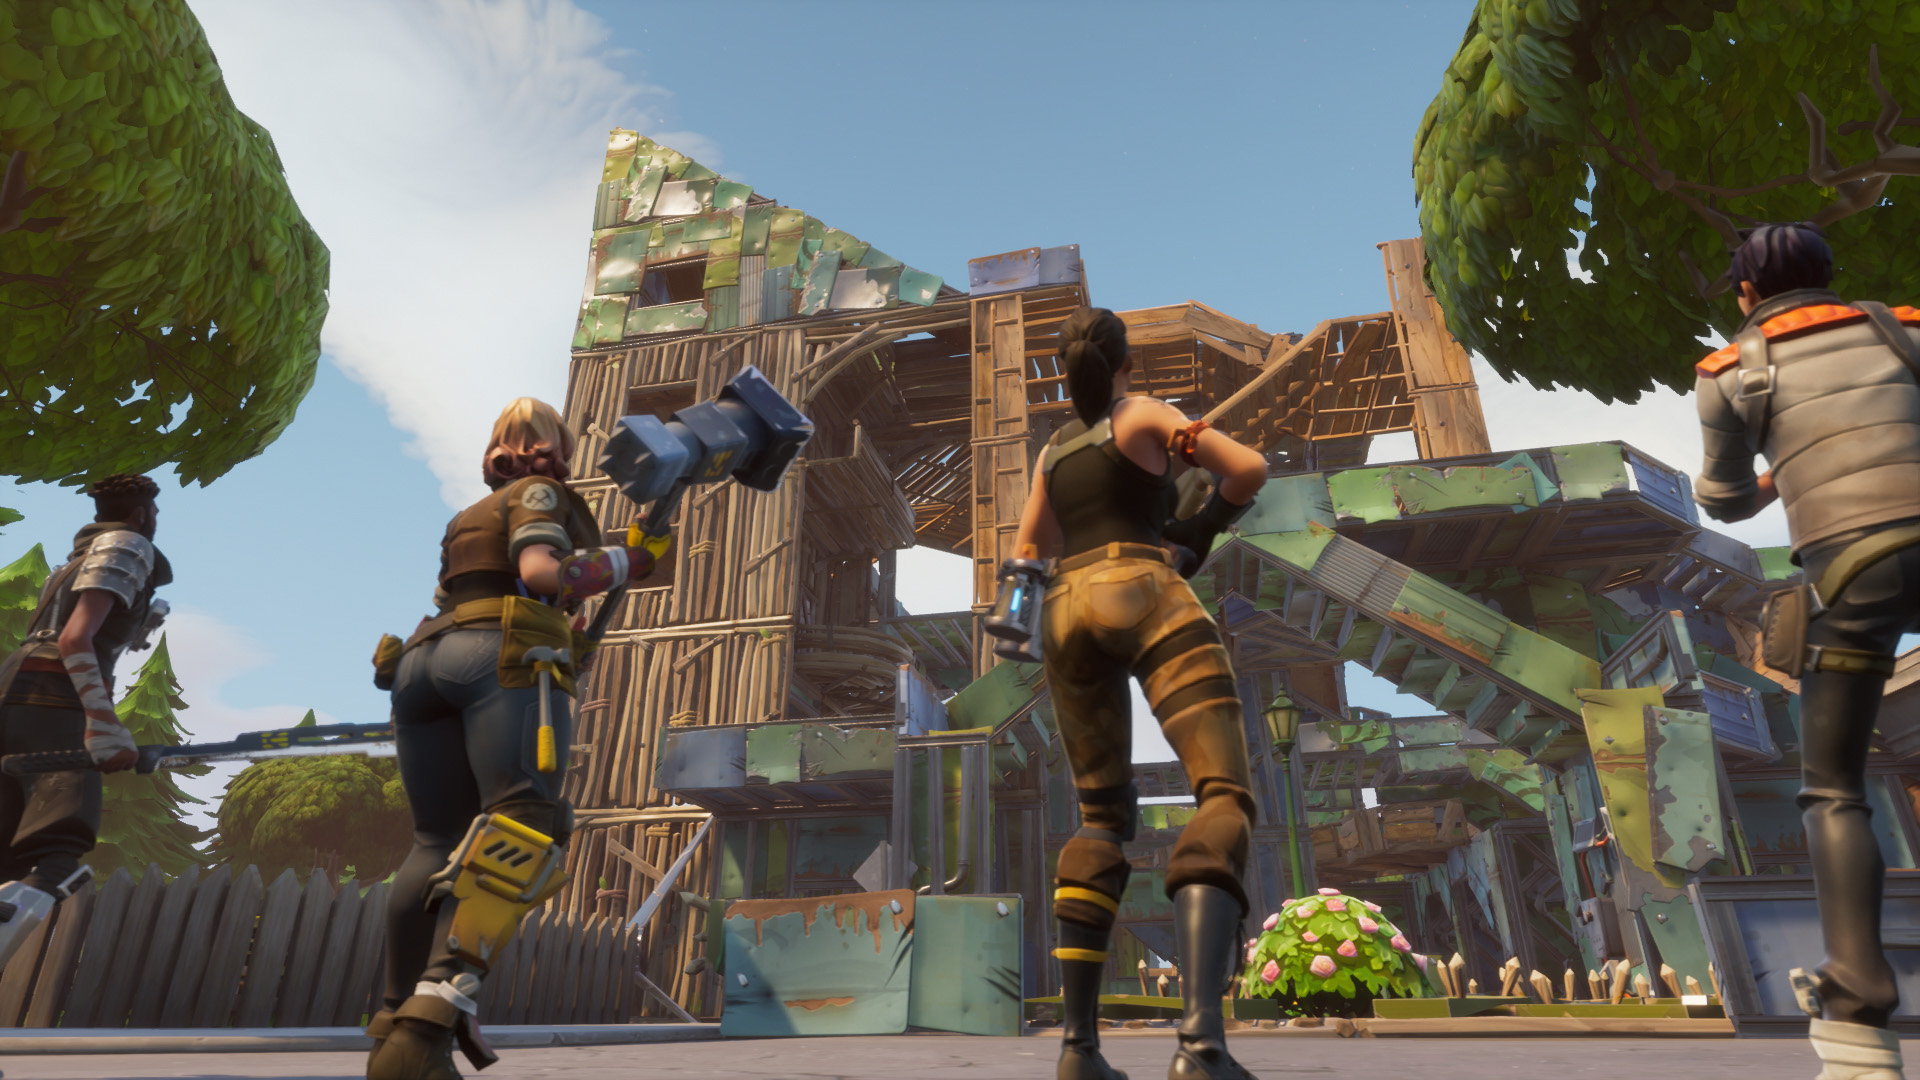 Epic Games Long Awaited Fortnite Is Only A Few Short